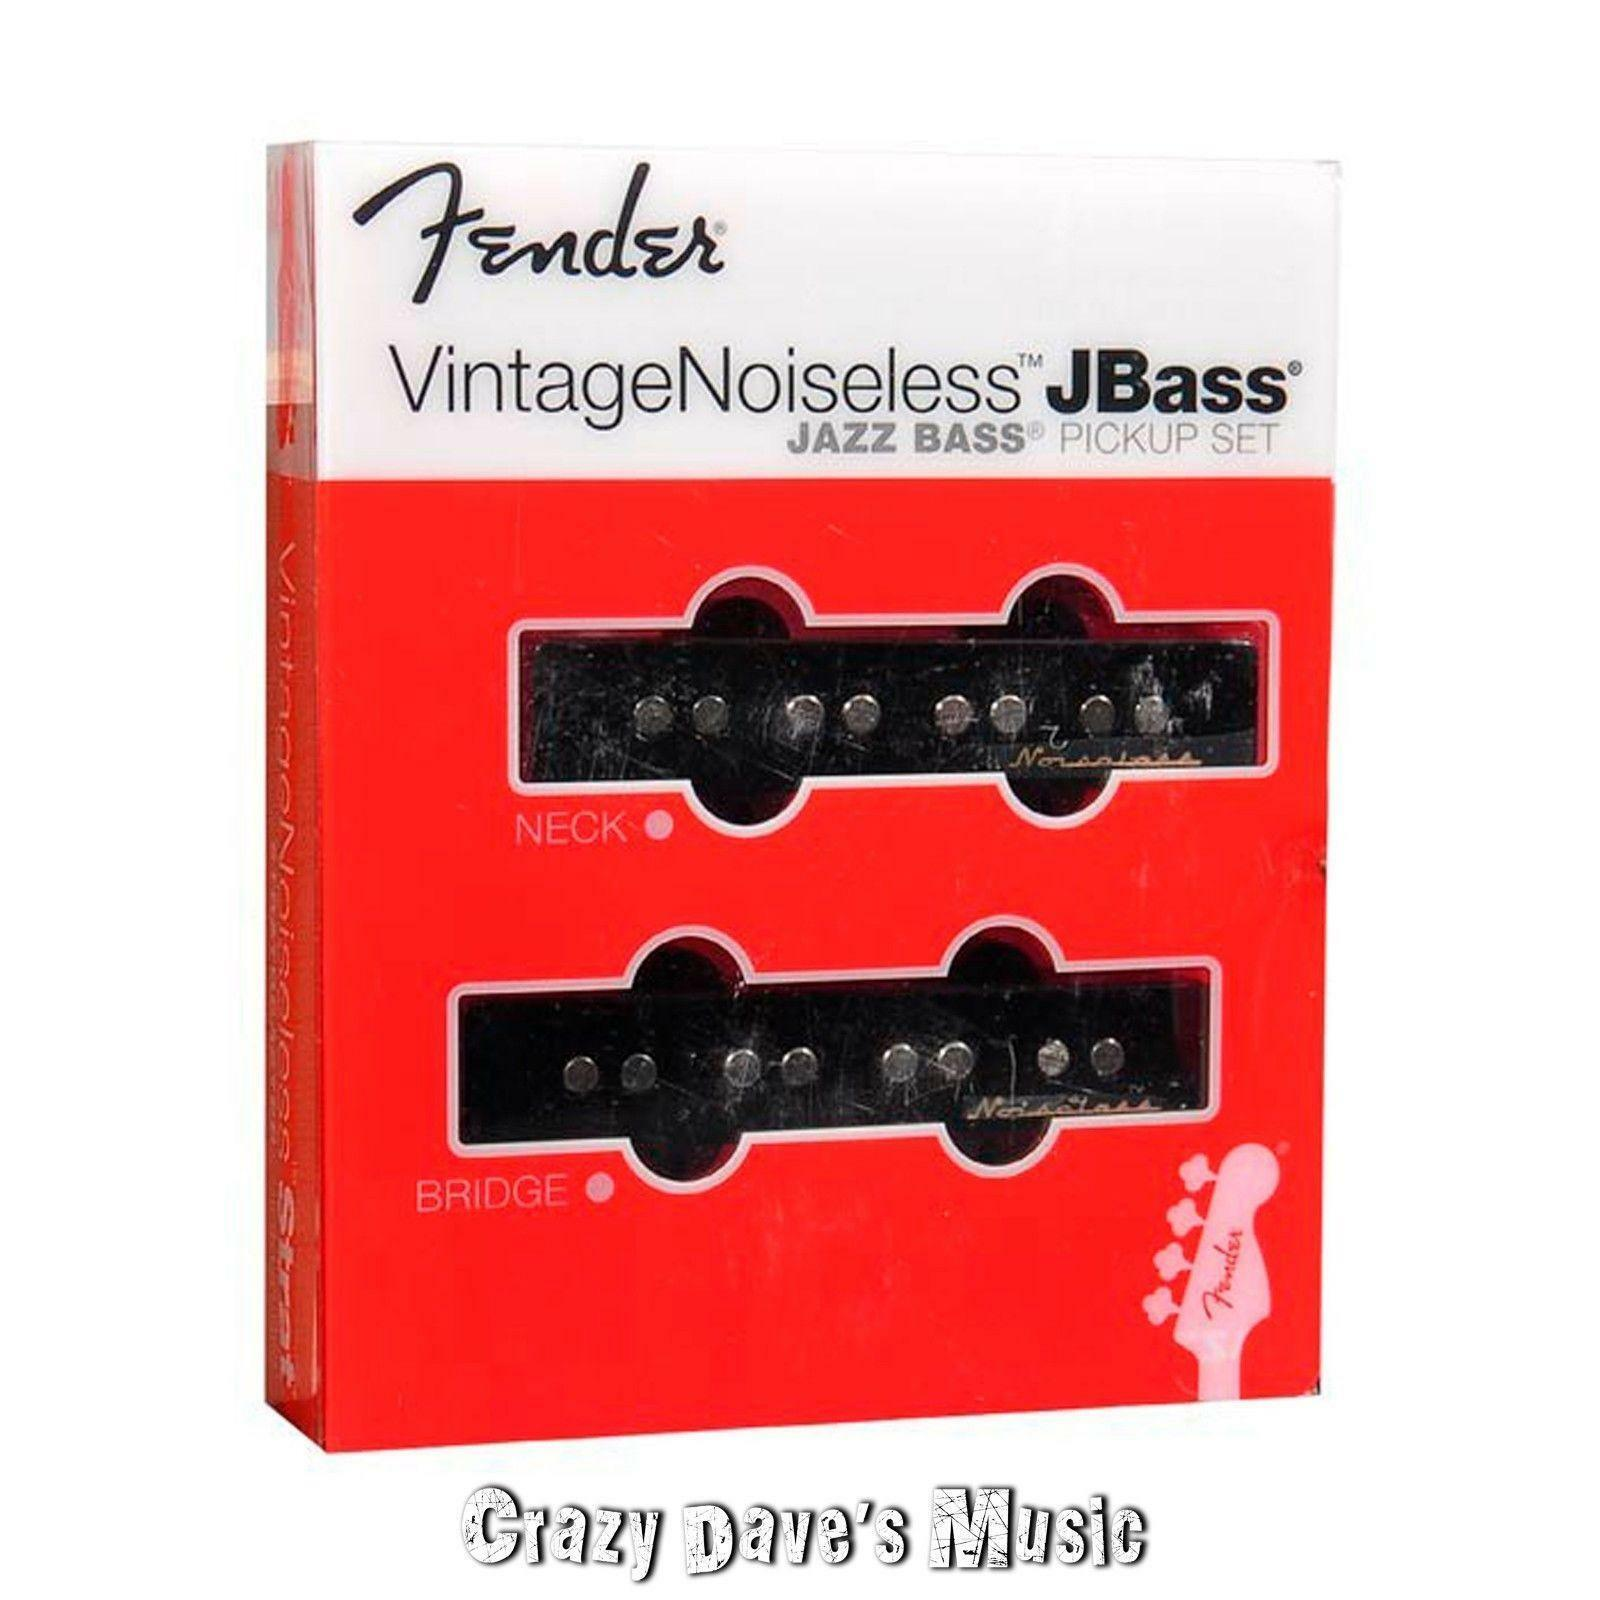 Fender Vintage Noiseless Jazz Bass Pickup Set Bridge Neck J Pickups New 11899 Noise Less Wiring Diagram 1 Of 1only 2 Available